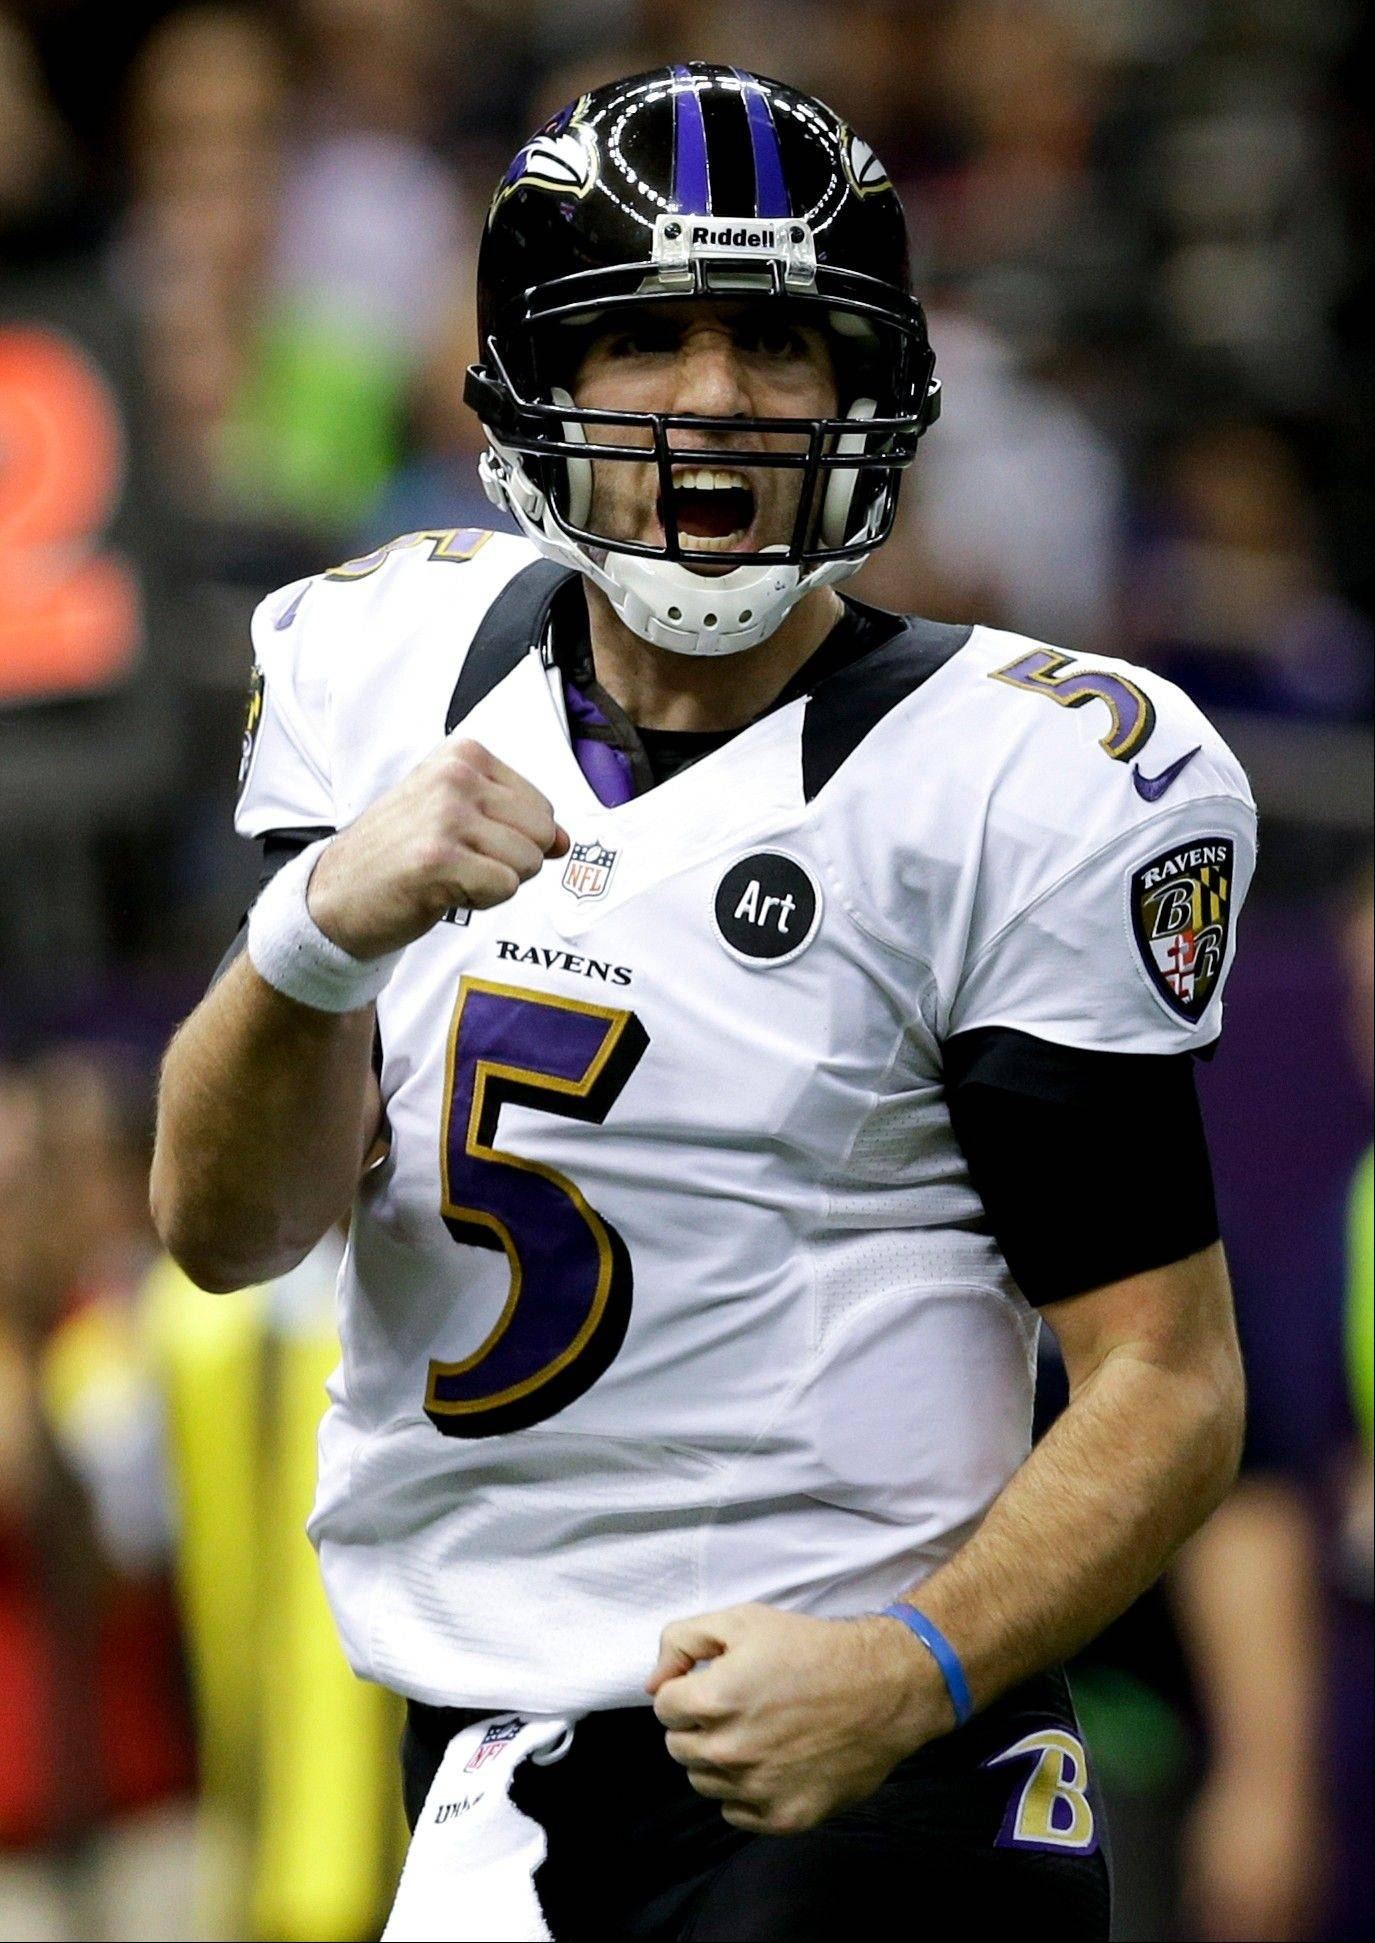 Ravens quarterback Joe Flacco celebrates a touchdown against the San Francisco 49ers during the first half of Super Bowl XLVII on Sunday in New Orleans. Flacco threw three TDs in the first half.